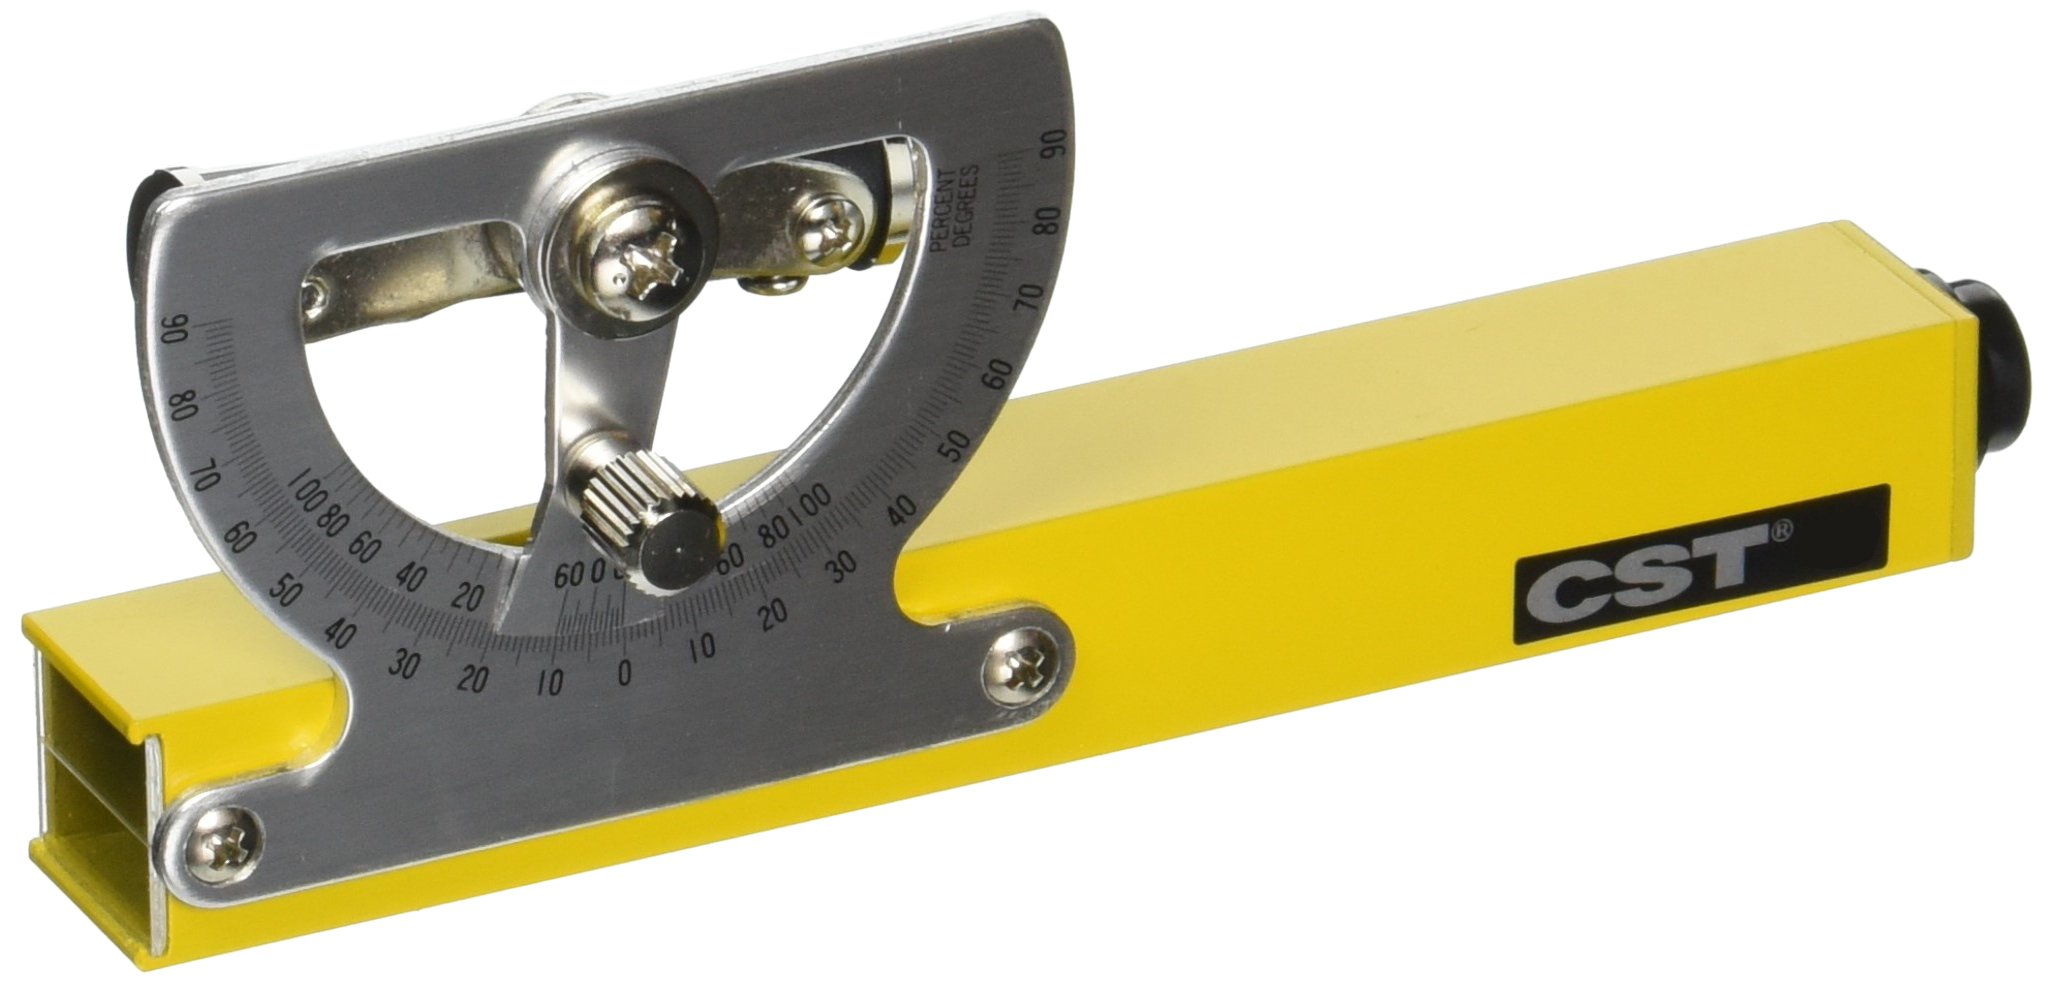 CST/berger 17-640 5-1/4-Inch Abney Hand Level